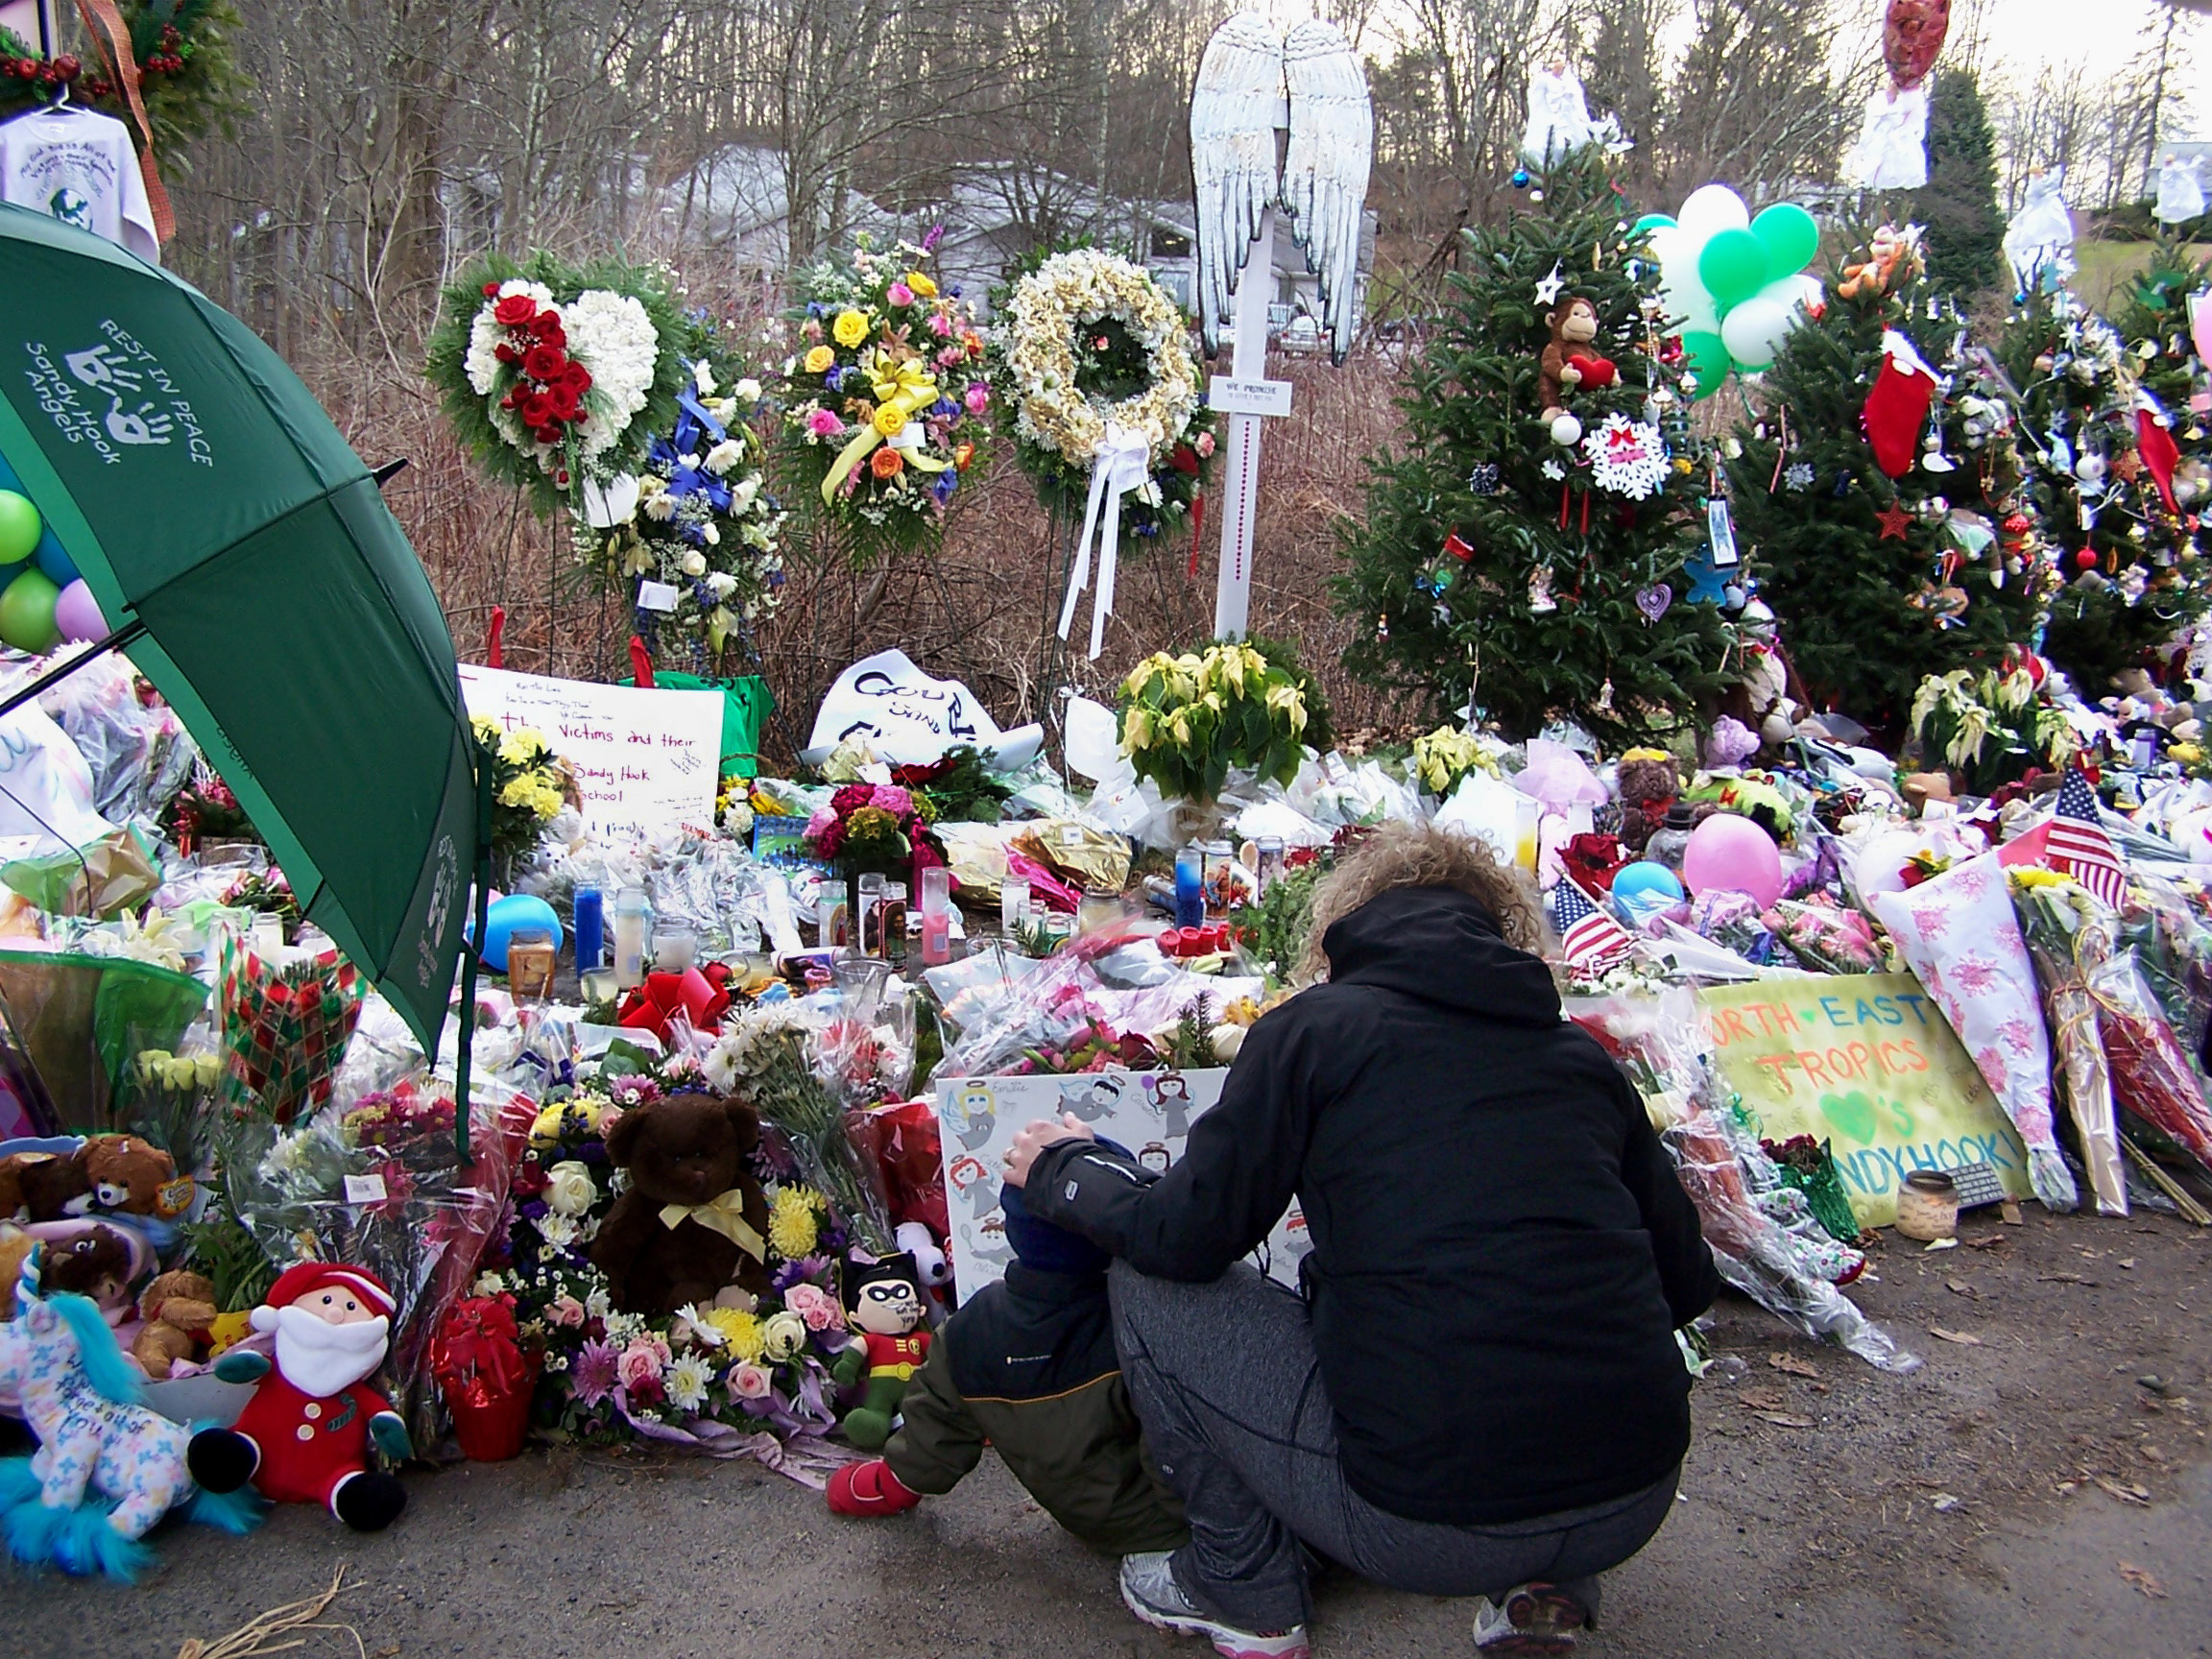 Connecticut Supreme Court Rules to Allow Sandy Hook Relatives to Sue Gunmakers